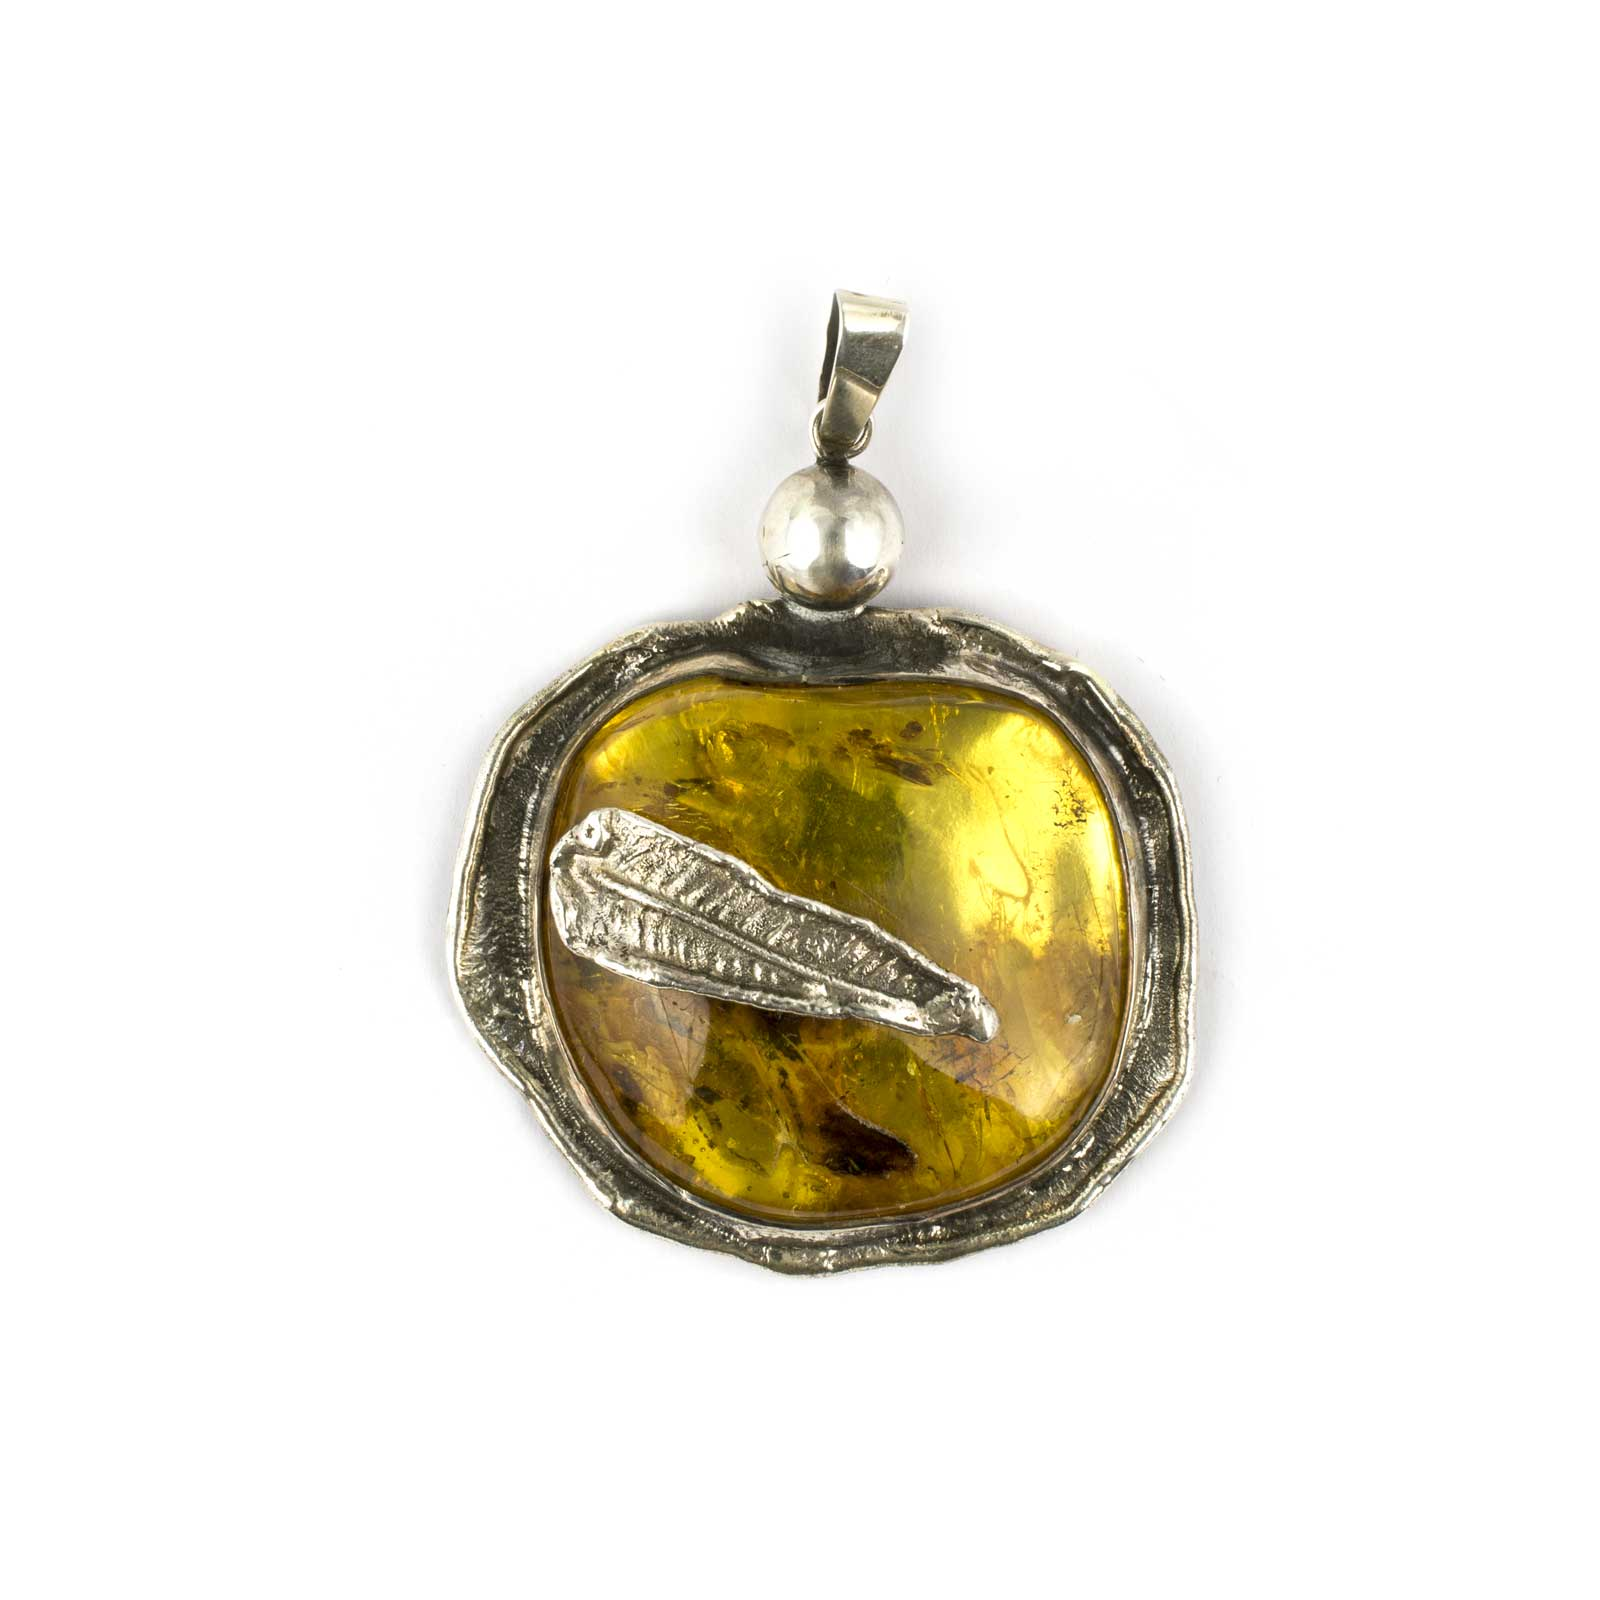 """Vintage Amber Pendant """"Medallion"""" with Insect Wings Inclusions"""